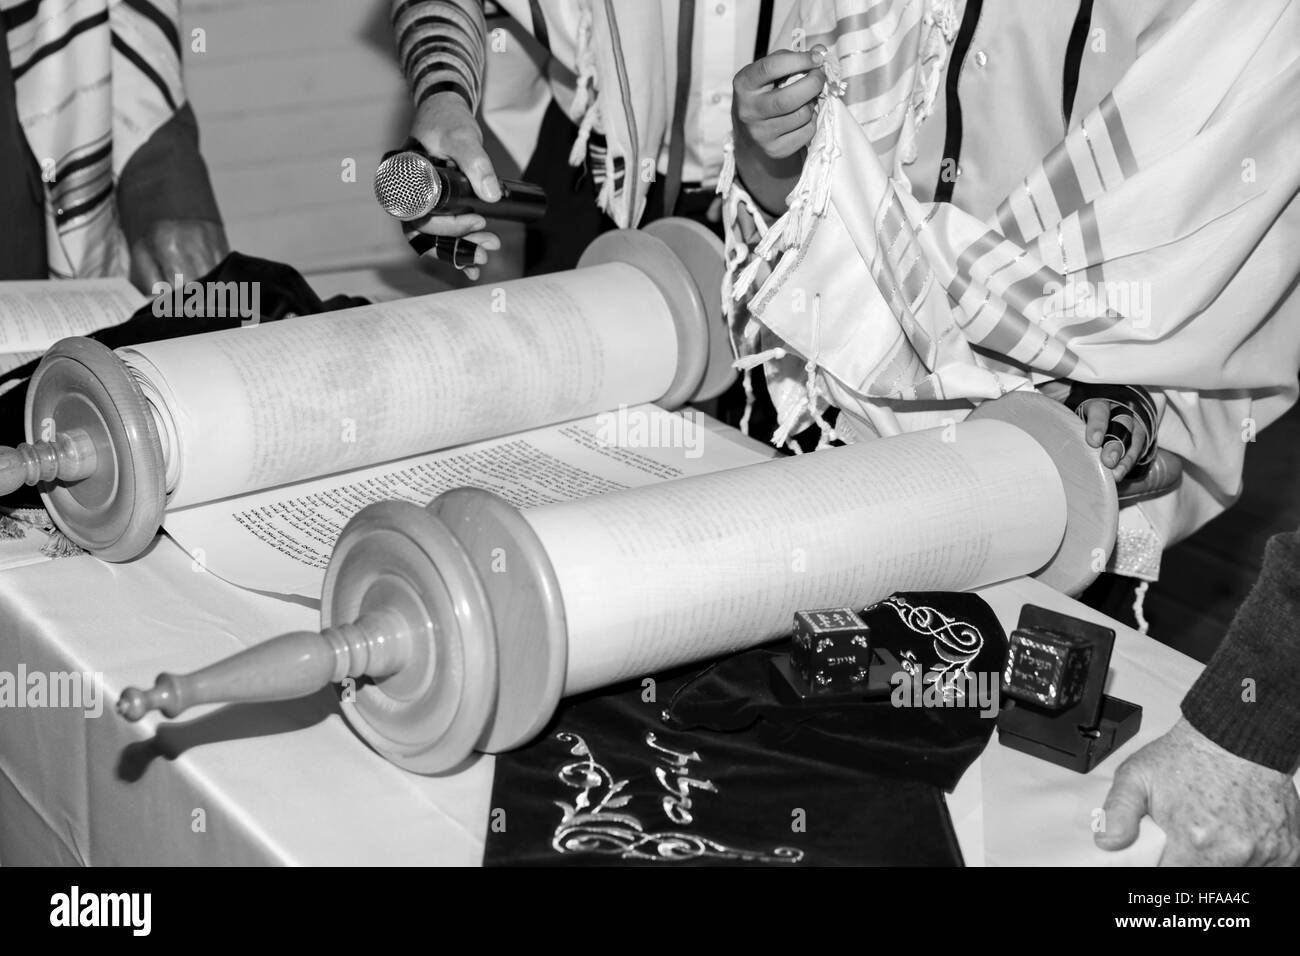 Reading the Torah scrolls - Stock Image